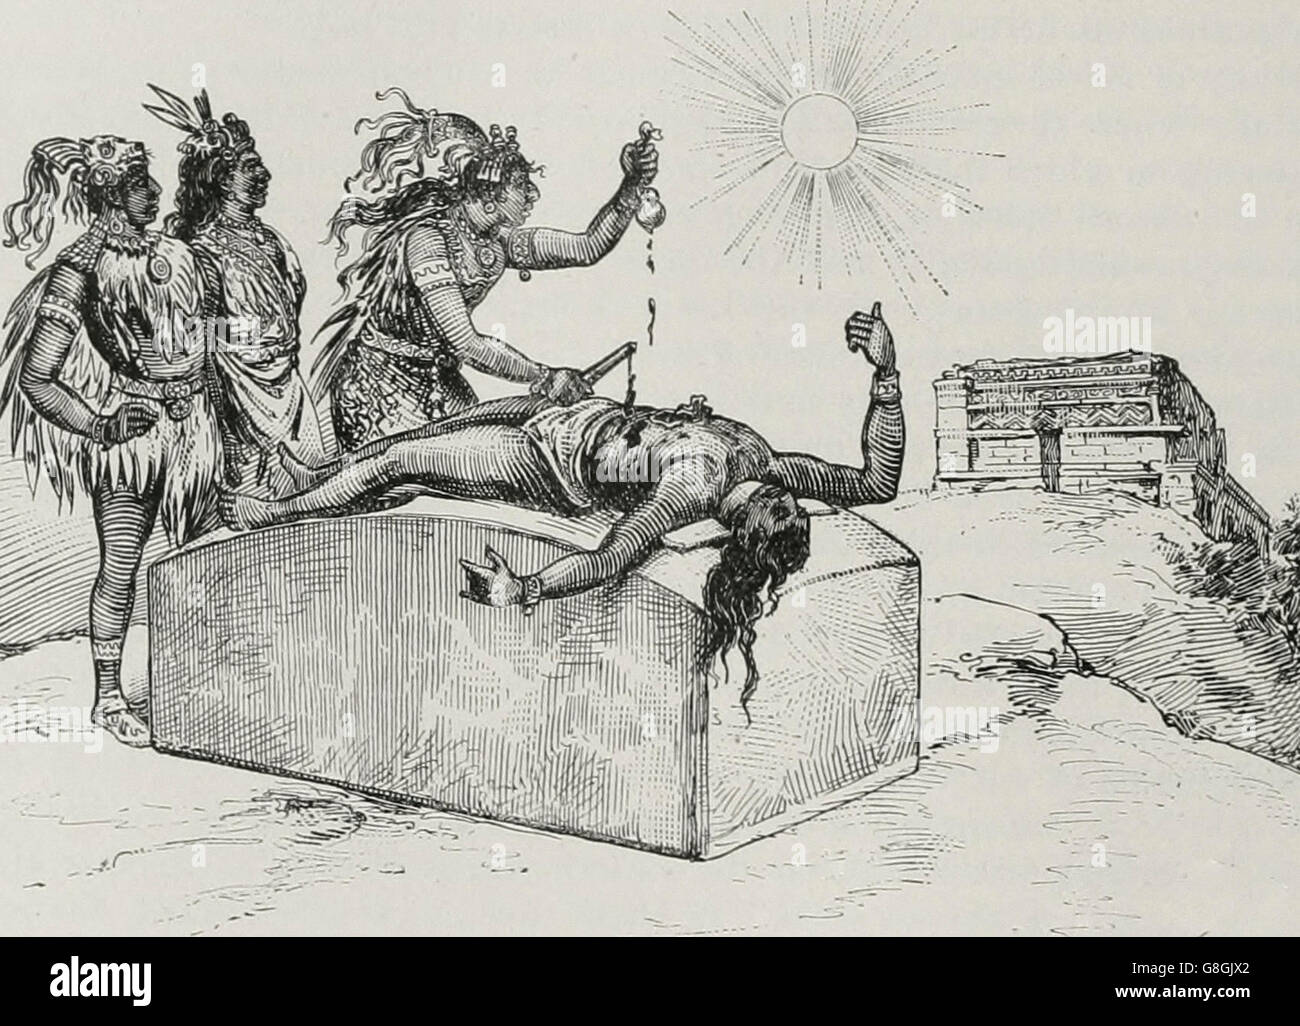 Aztecs sacrificing to the Sun - Stock Image